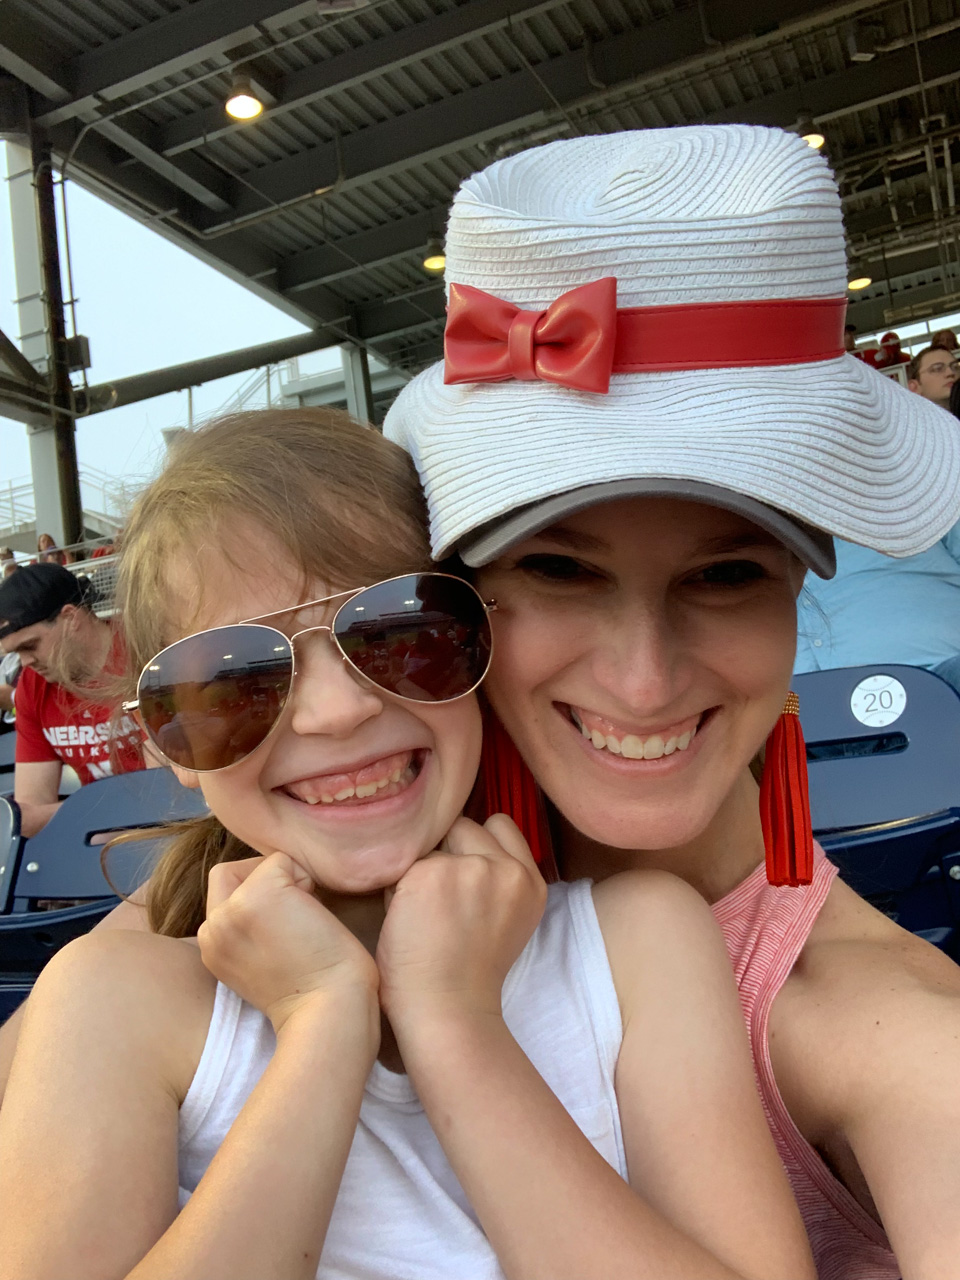 Having fun with my girl at a baseball game.